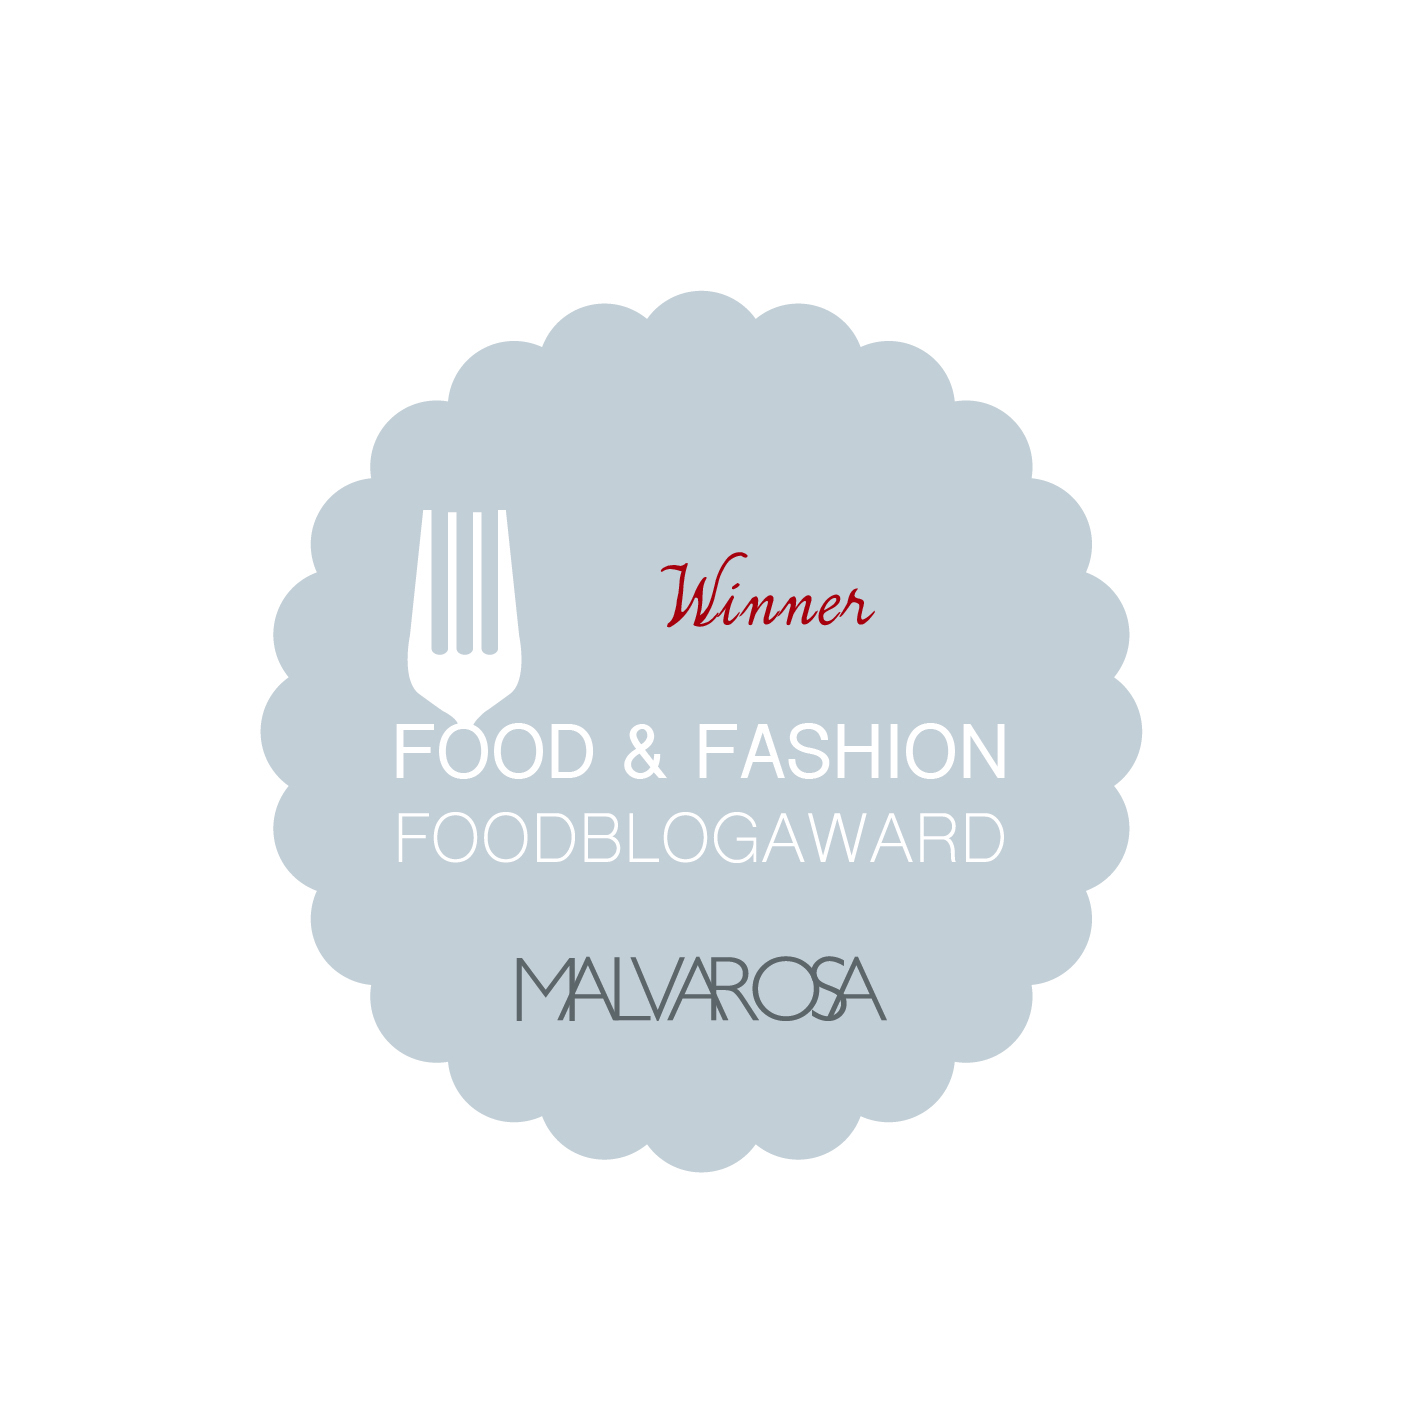 Winner of the Food Blog Award 2016 Food & Fashion Category